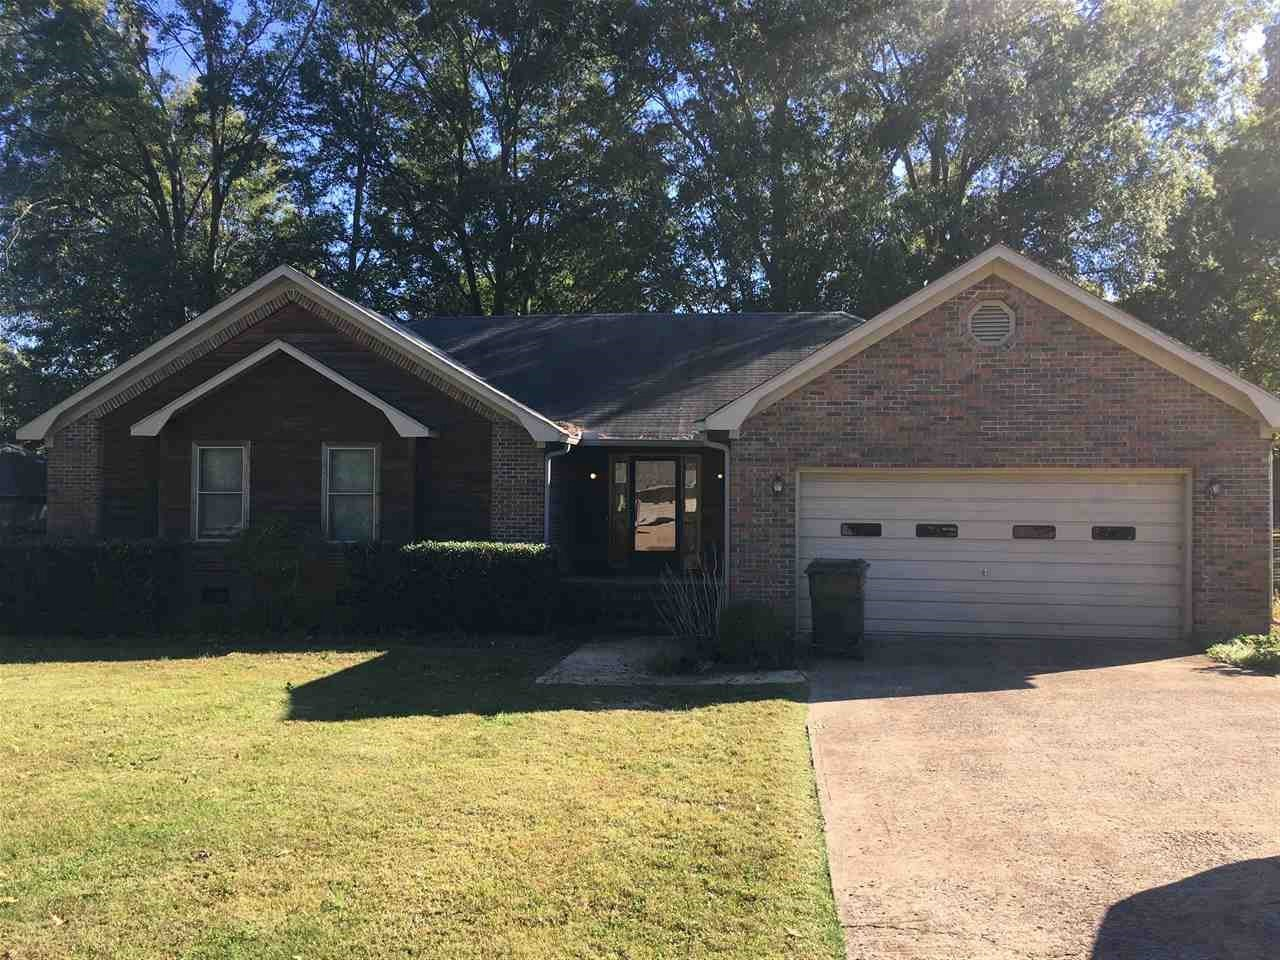 112 Victoria Drive,Martin,Tennessee 38237-3718,3 Bedrooms Bedrooms,2 BathroomsBathrooms,Residential,112 Victoria Drive,180104